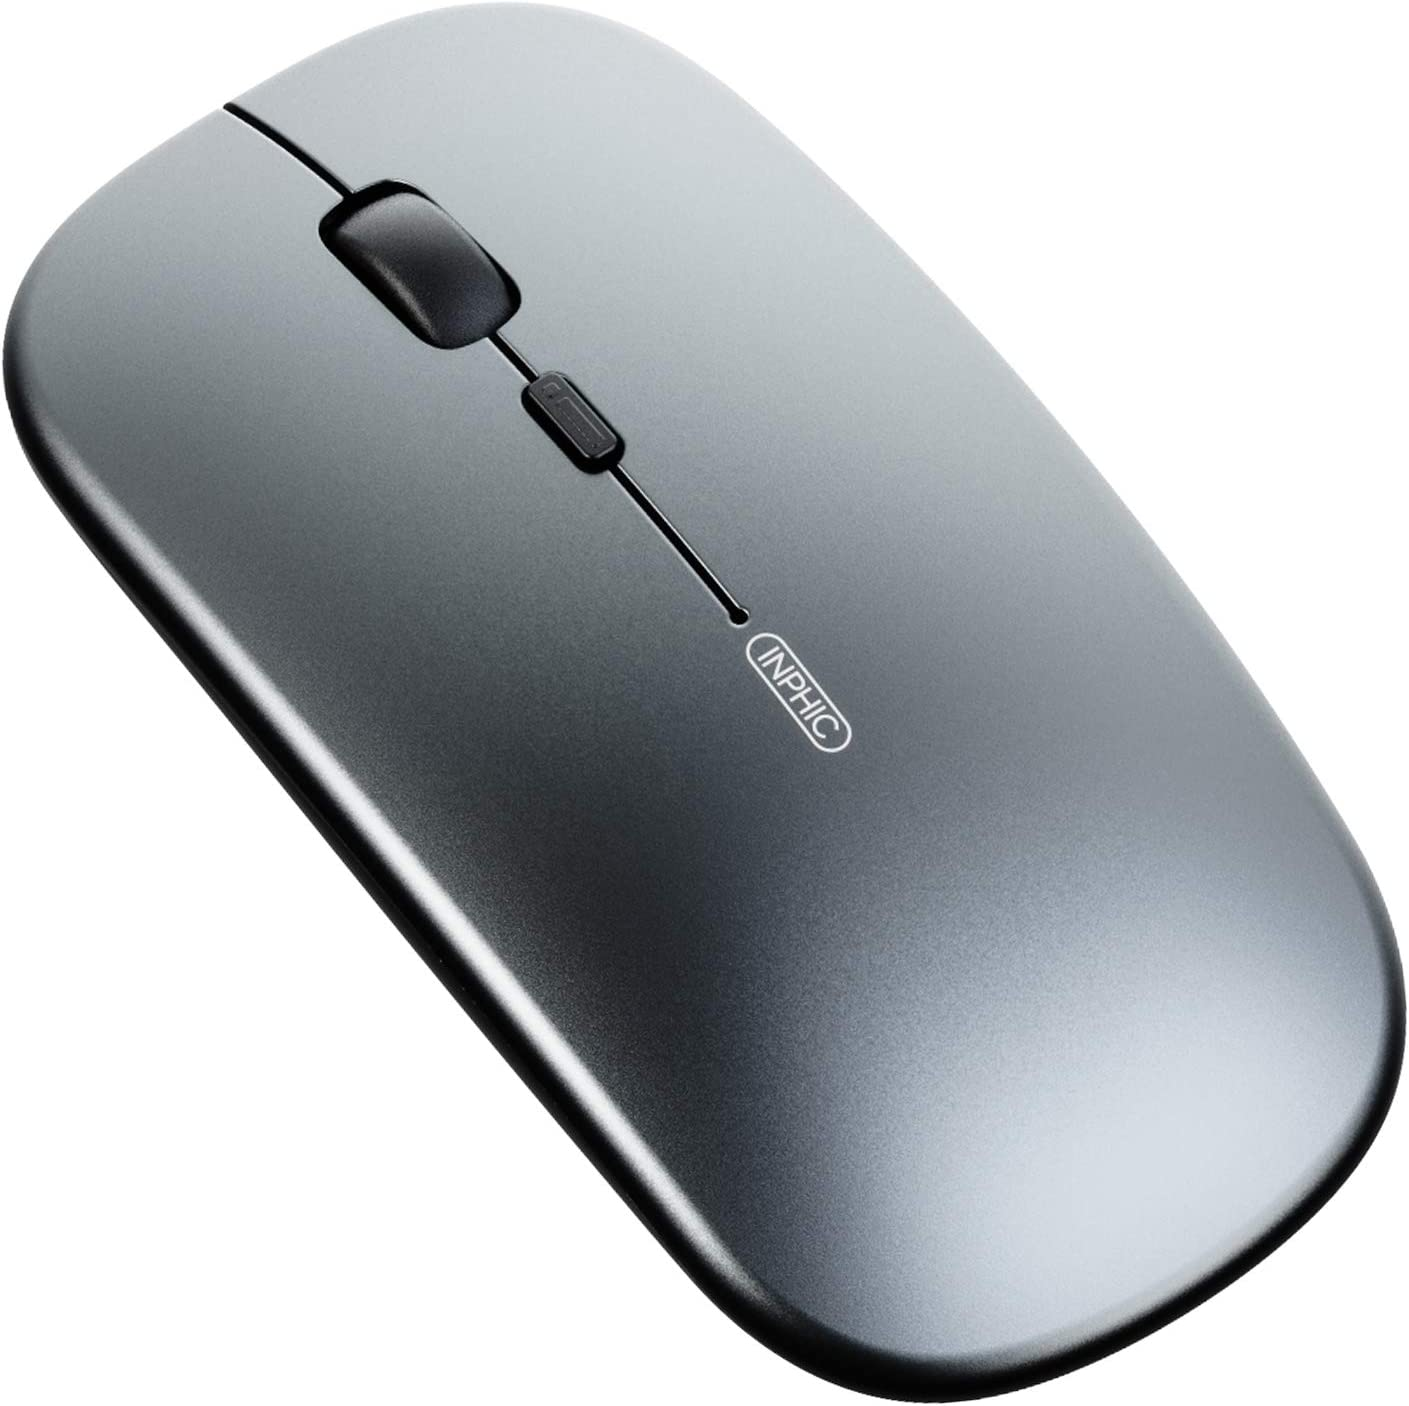 Inphic Multi-Device Slim Silent Rechargeable Bluetooth Wireless Mouse Android Tablet Bluetooth Mouse Tri-Mode: BT 5.0//3.0+ 2.4G USB 1600DPI Cordless Mice for iPad Laptop PC Mac MacBook Pro